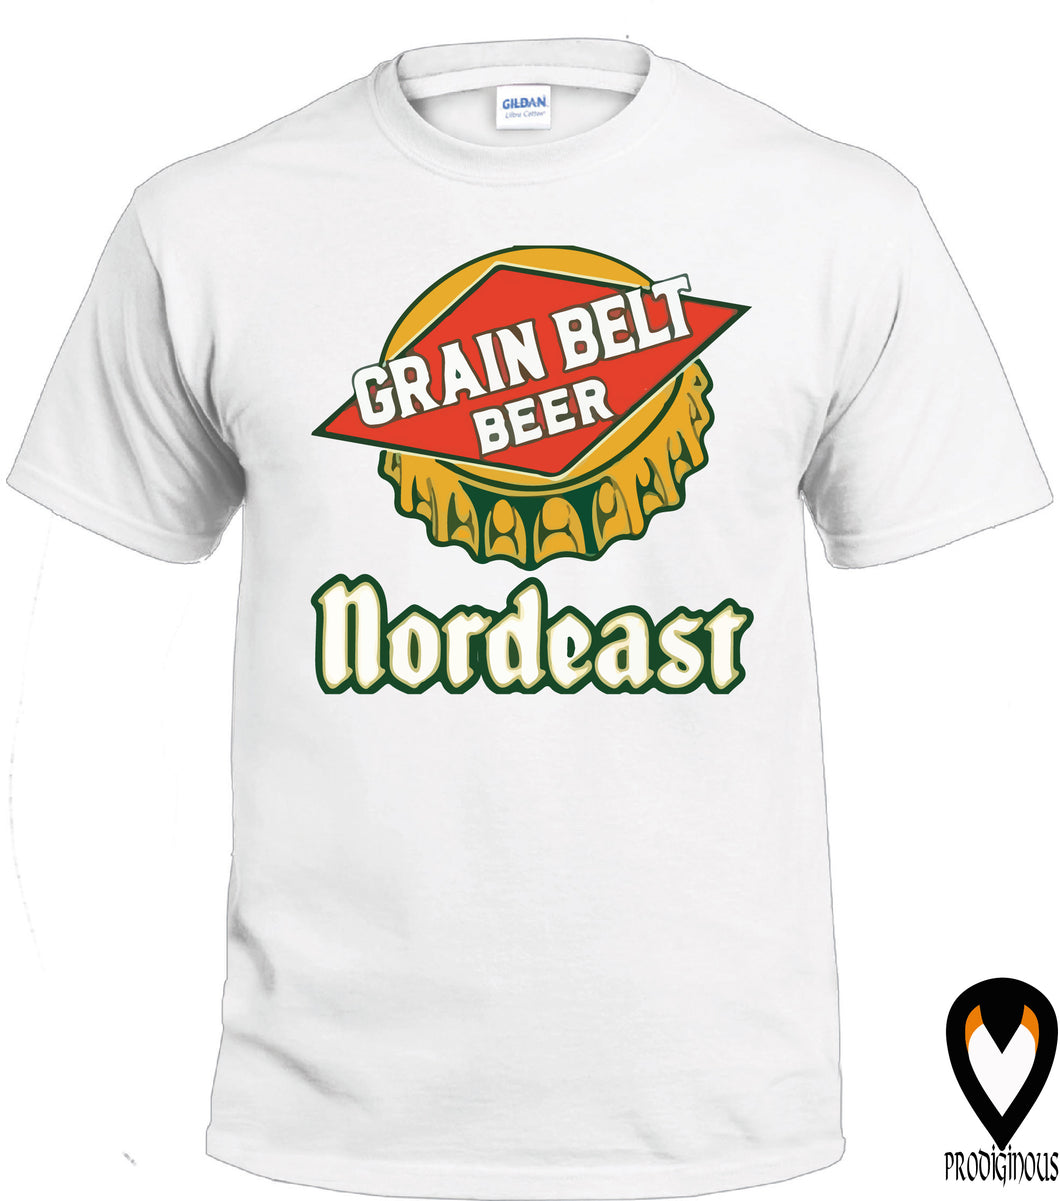 Grain Belt - Nordeast - T-Shirt